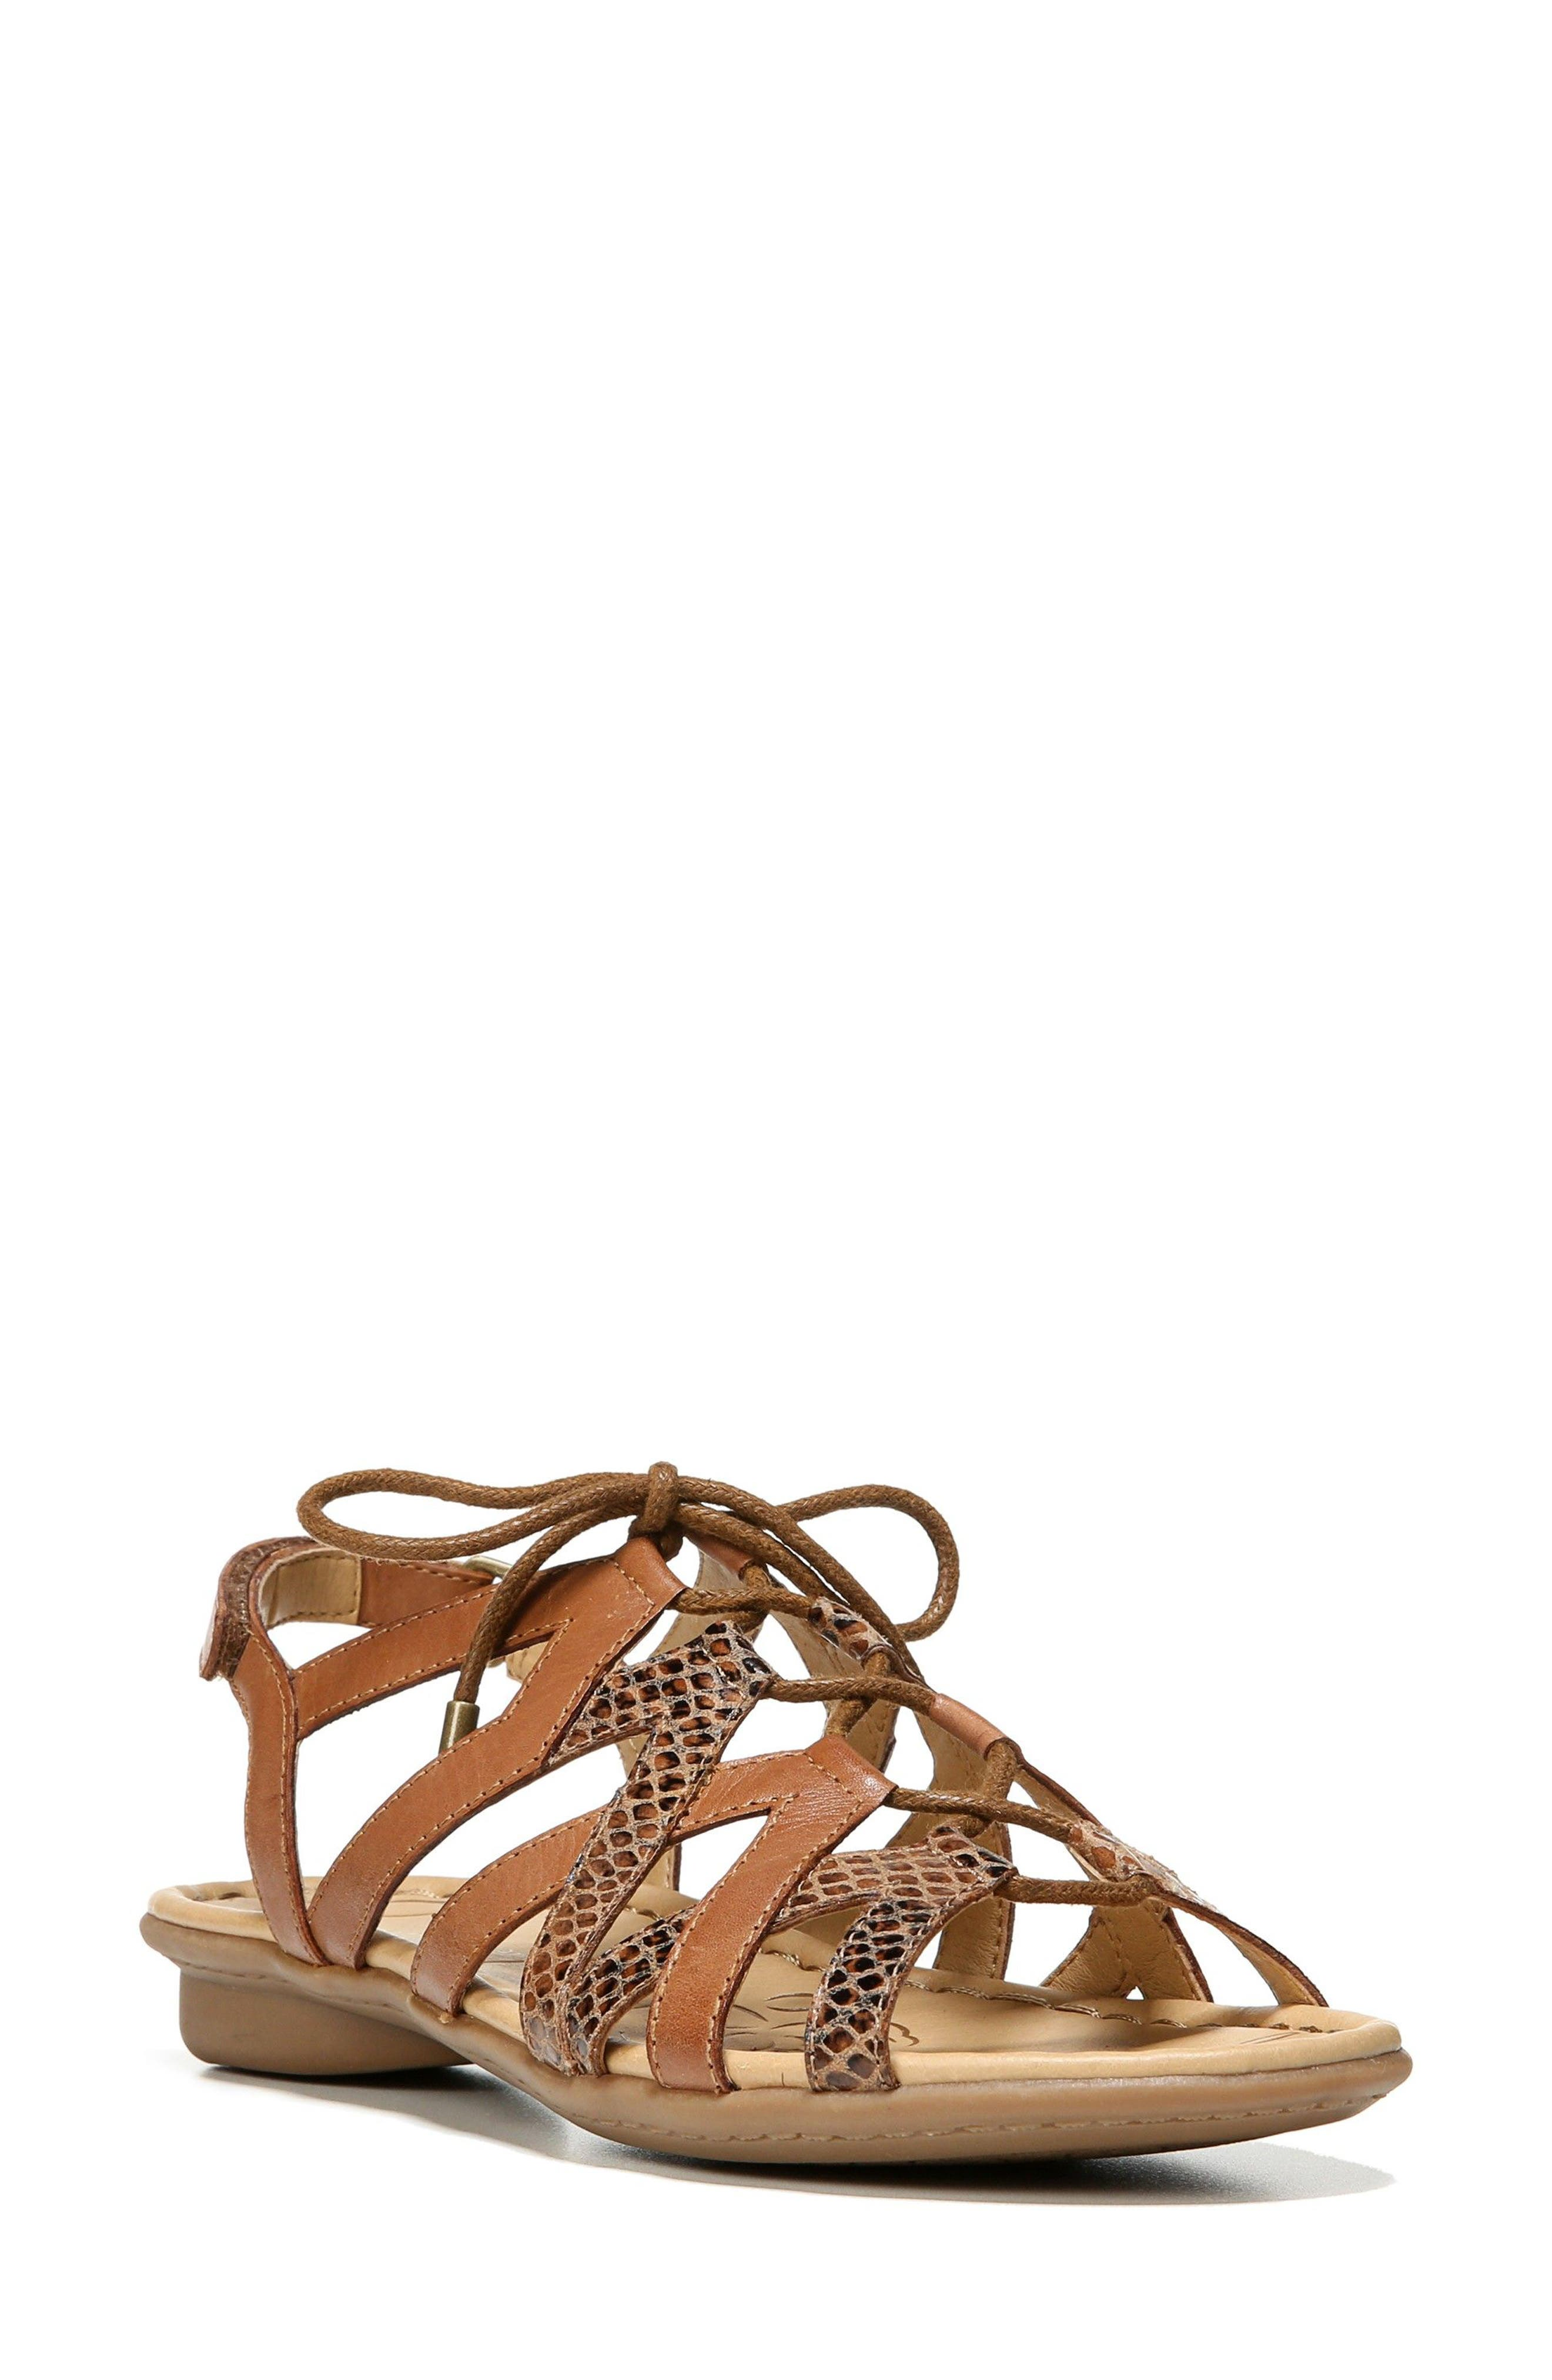 'Whimsy' Ghillie Sandal,                             Main thumbnail 1, color,                             Saddle Leather